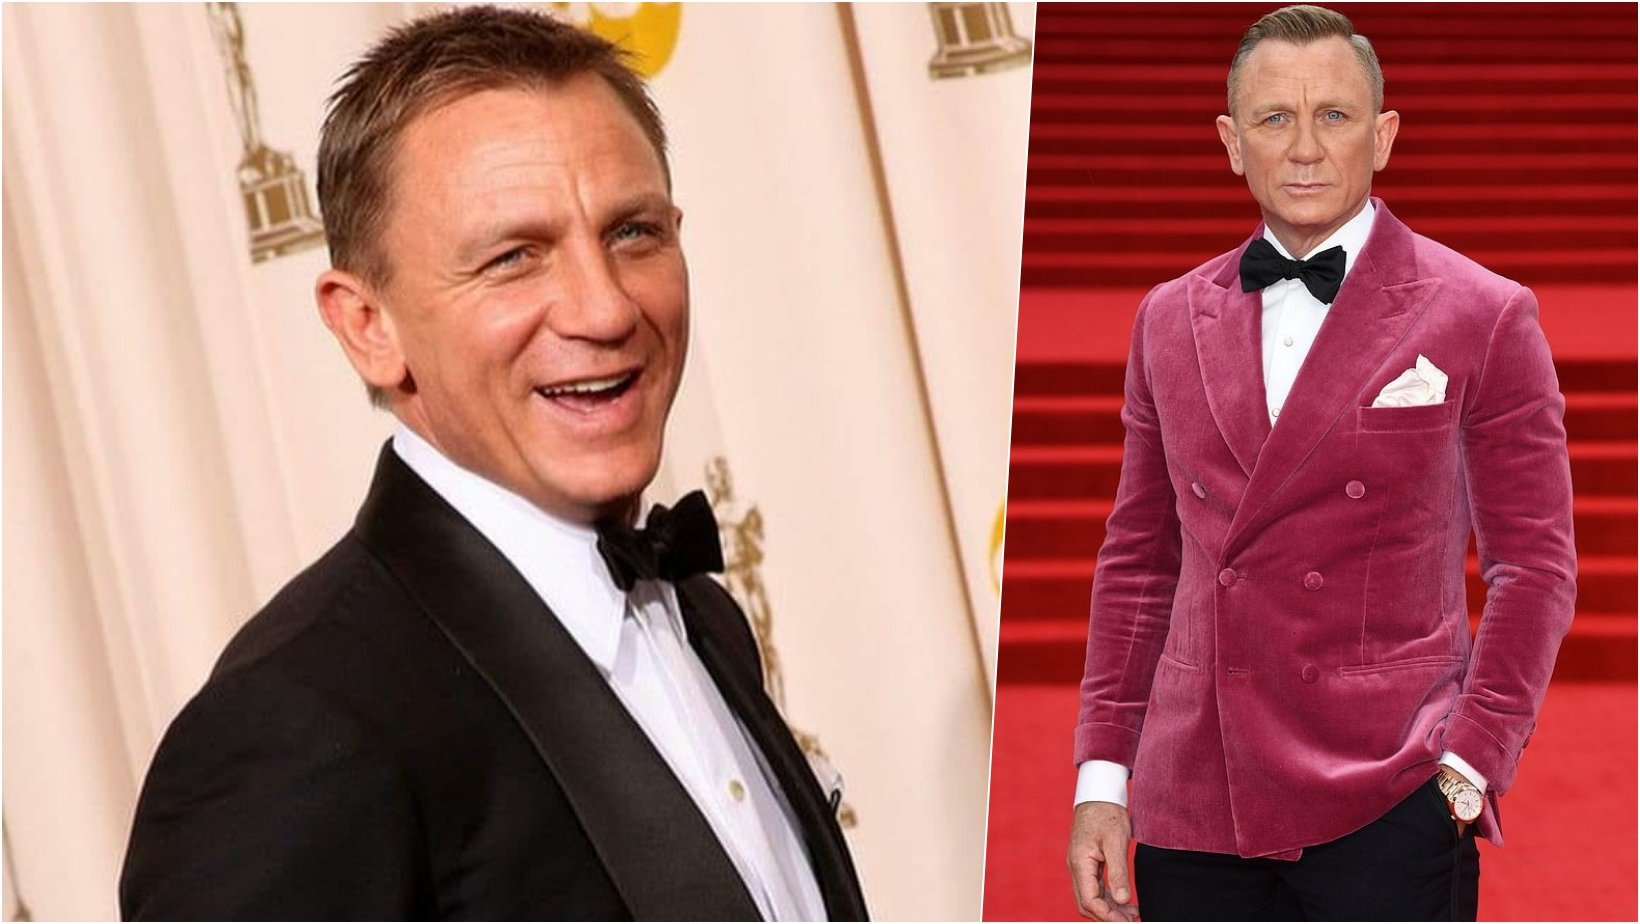 6 facebook cover 19.jpg?resize=412,275 - James Bond Actor Daniel Craig Reveals The Reason Why He Prefers Going To Gay Bars During A Night Out